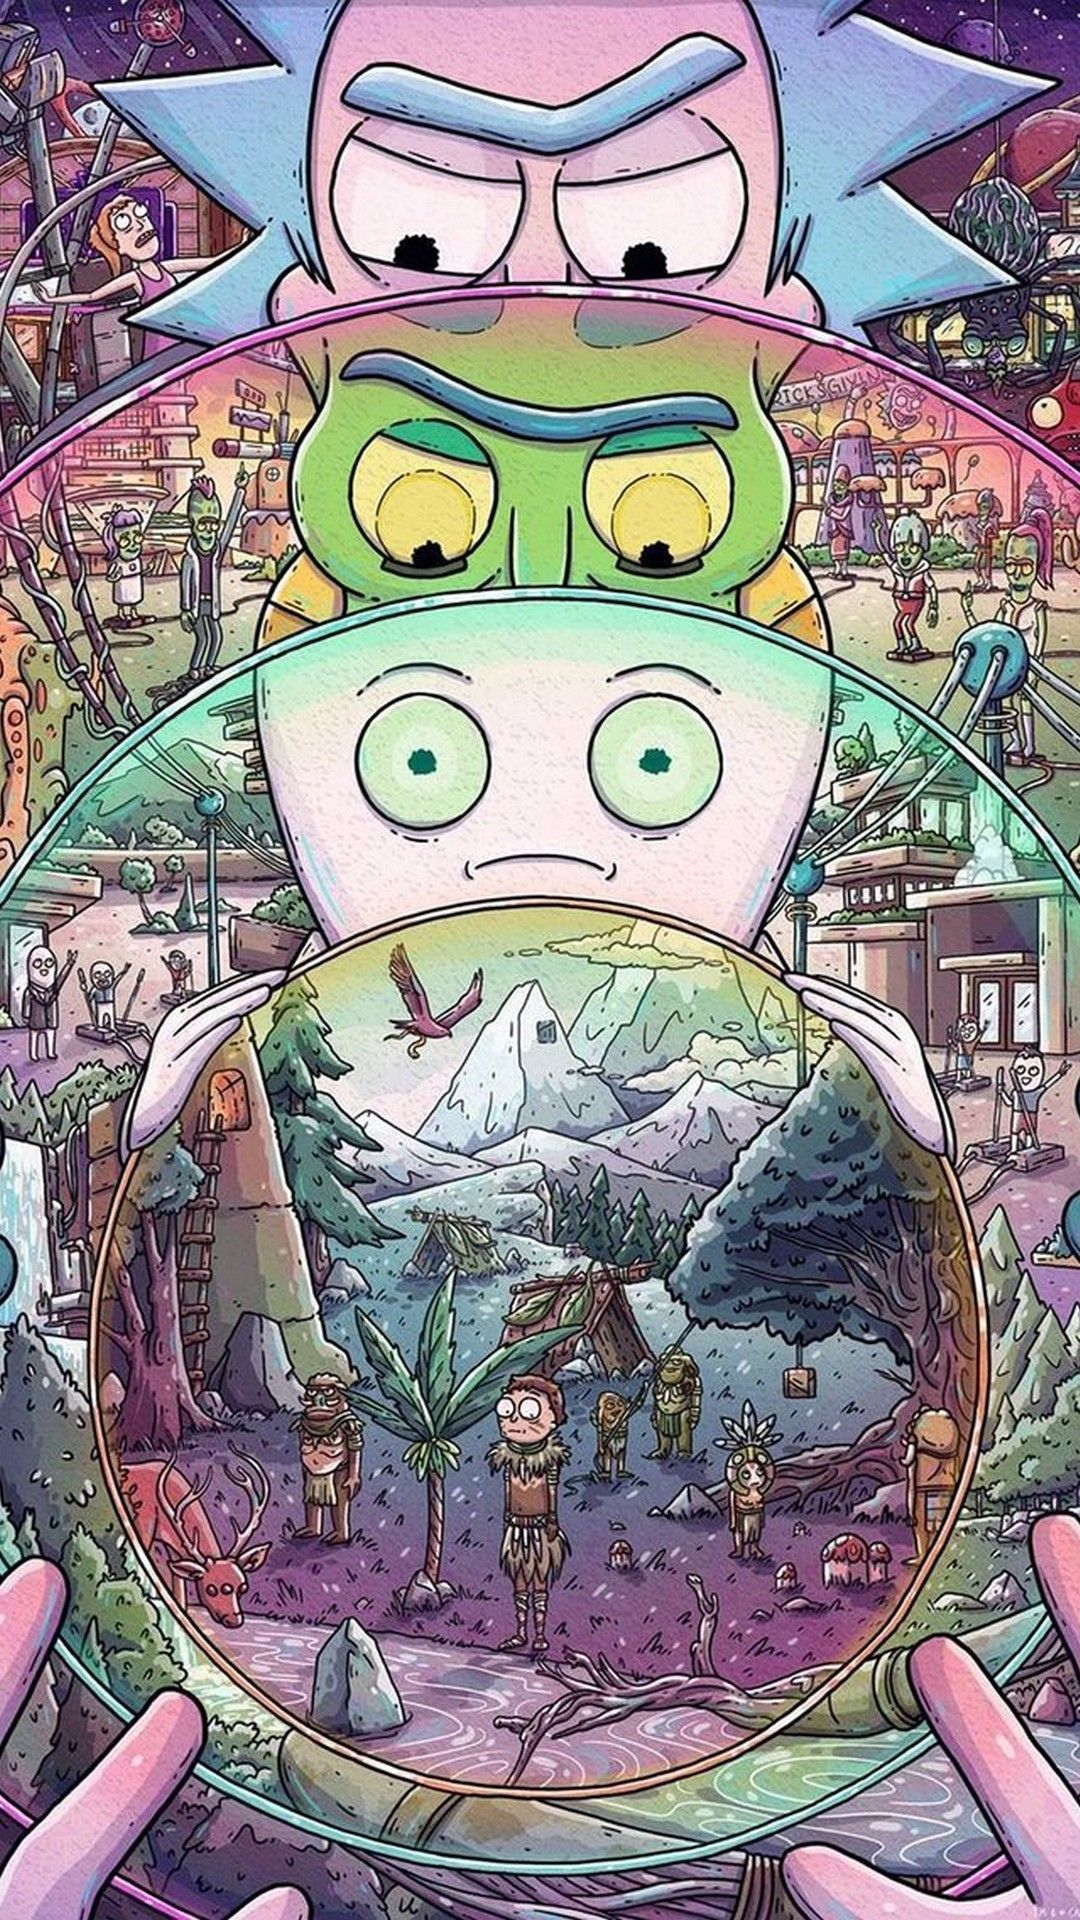 Rick And Morty Iphone X Wallpaper Best Hd Wallpapers Iphonexsmax Rick And Morty Poster Rick I Morty Rick And Morty